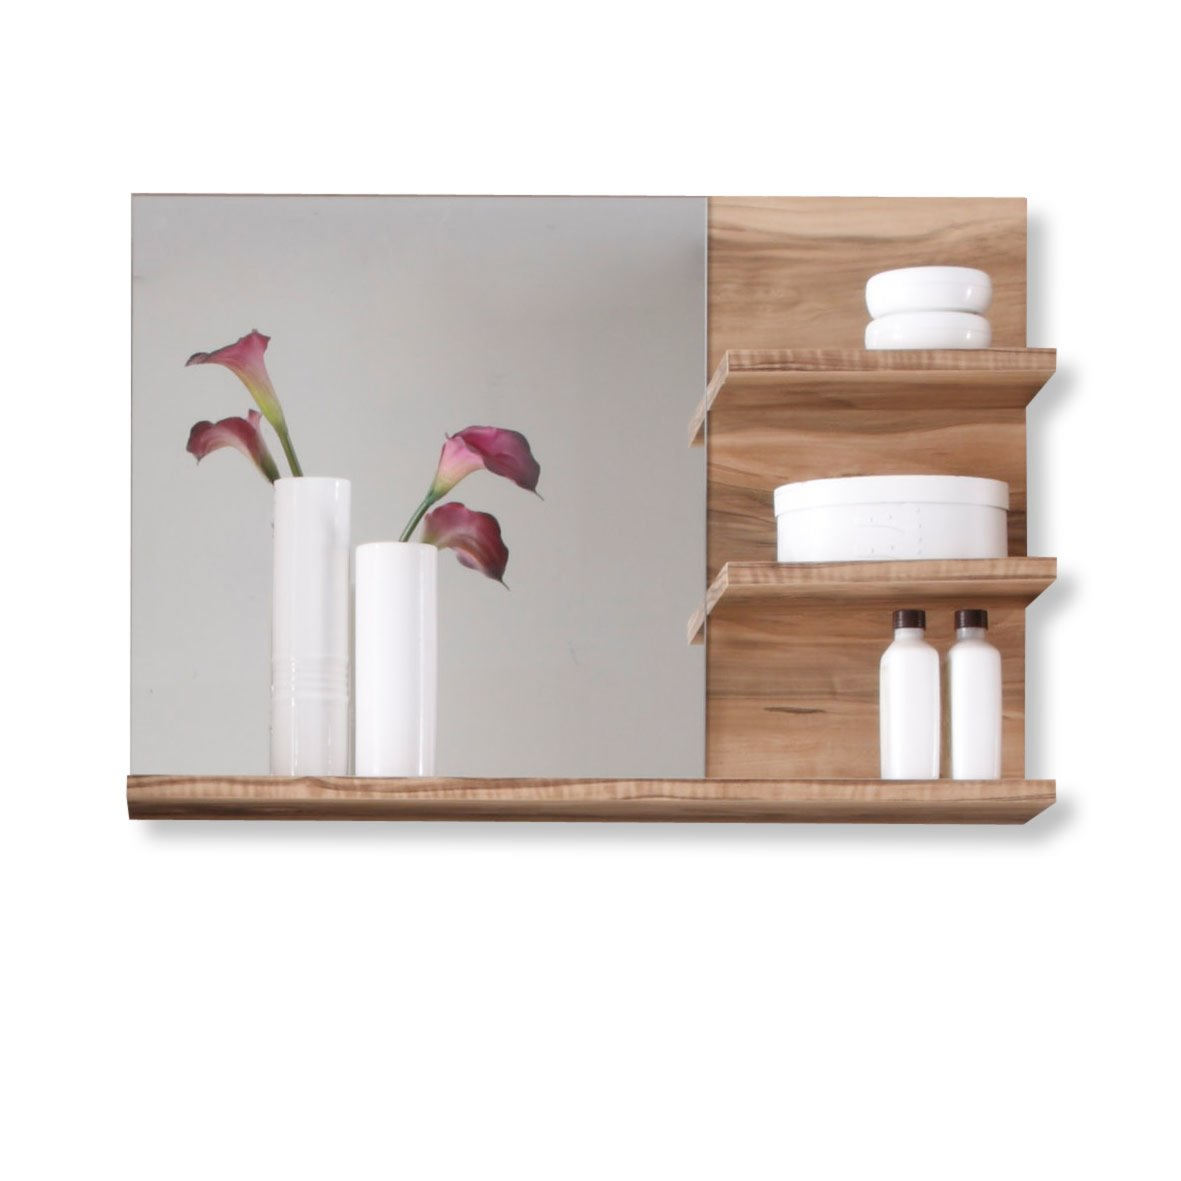 roller wandboard mit spiegel cancun boom ebay. Black Bedroom Furniture Sets. Home Design Ideas